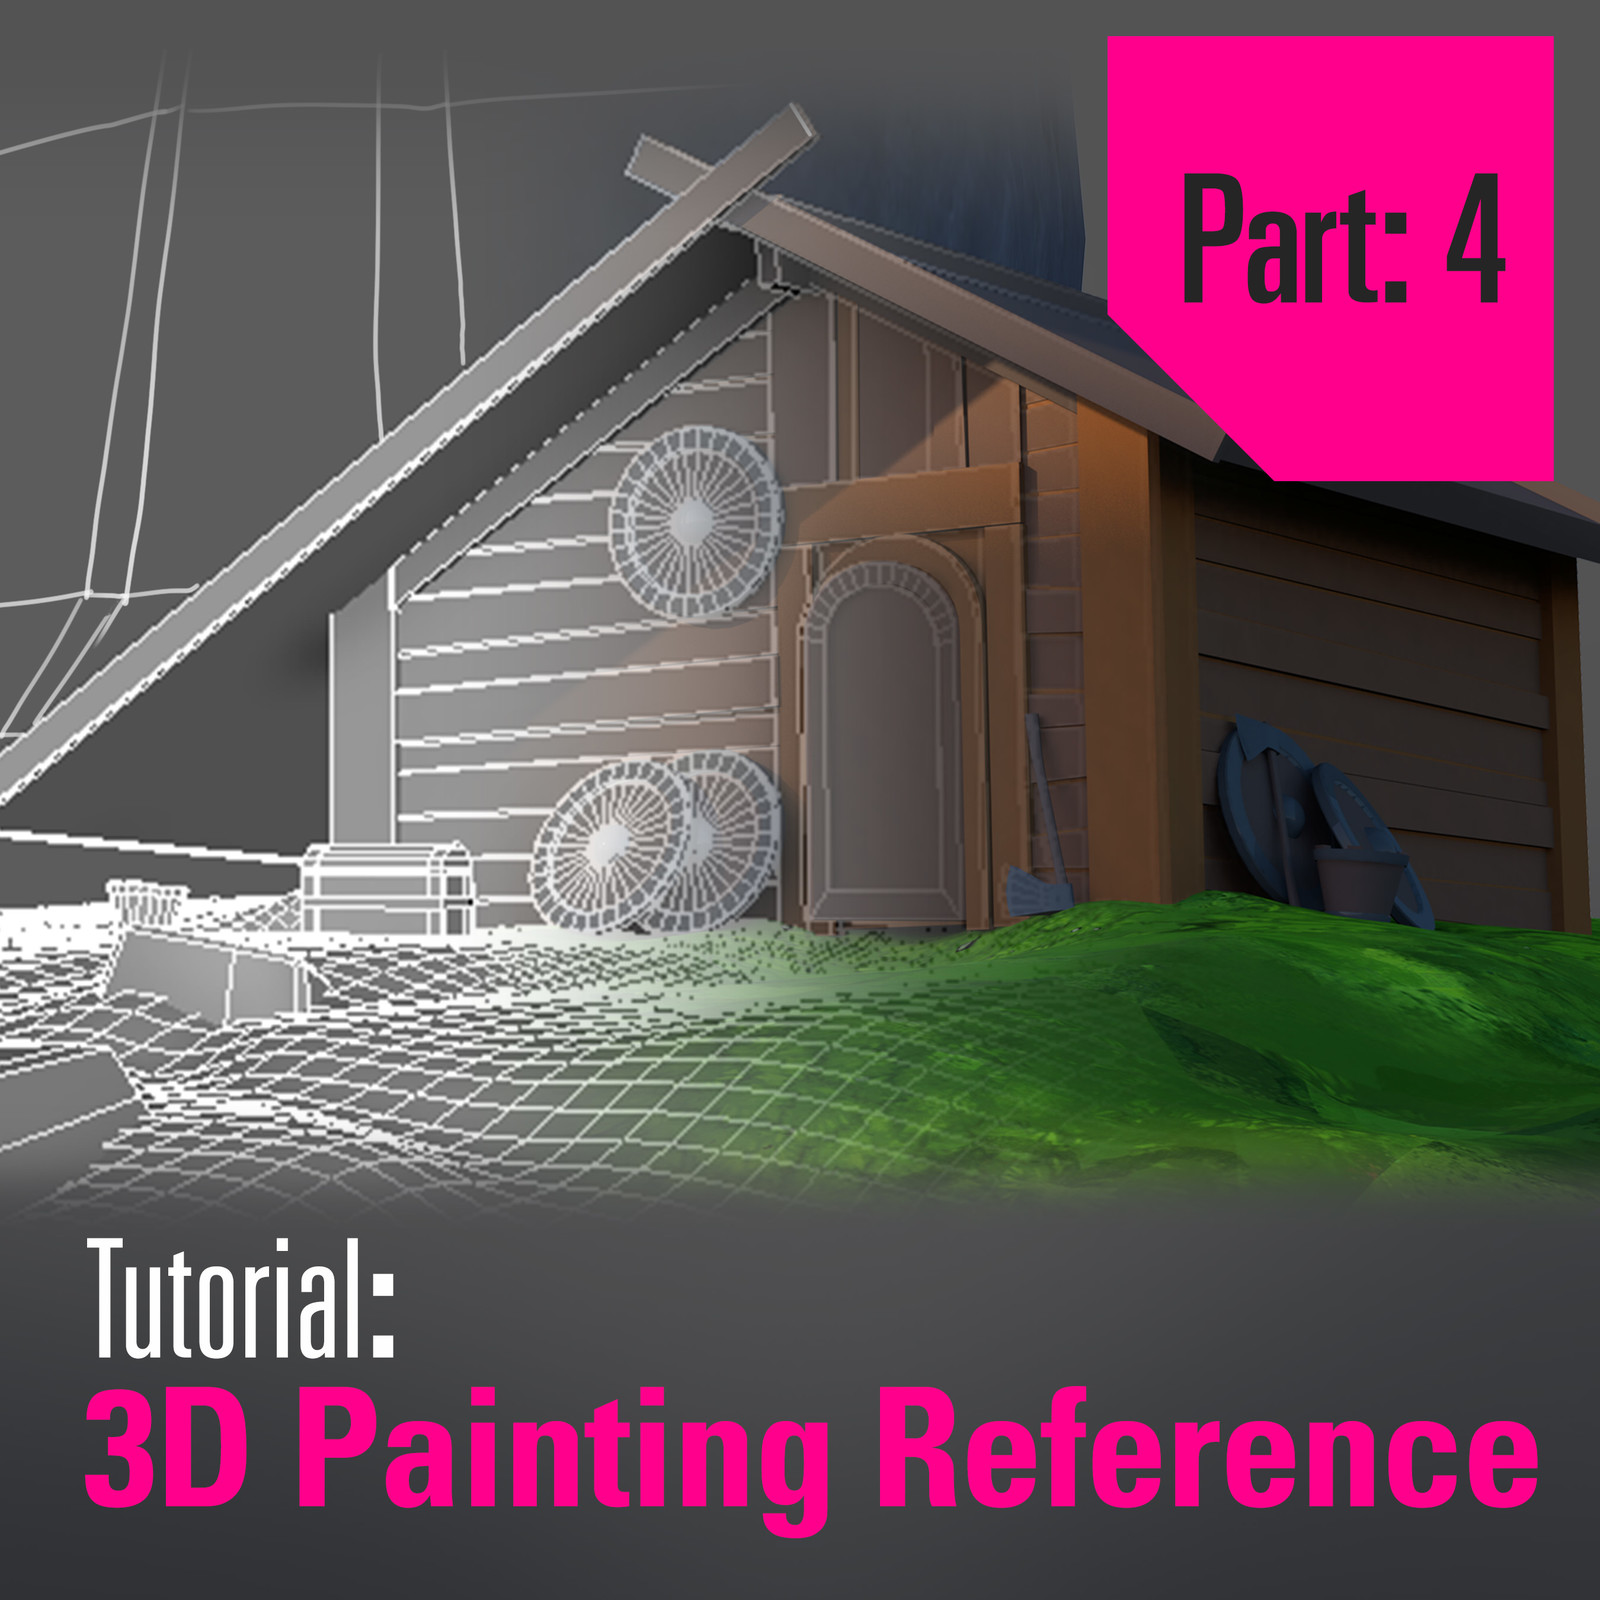 Tutorial: 3D Painting Reference Creation - Part 4